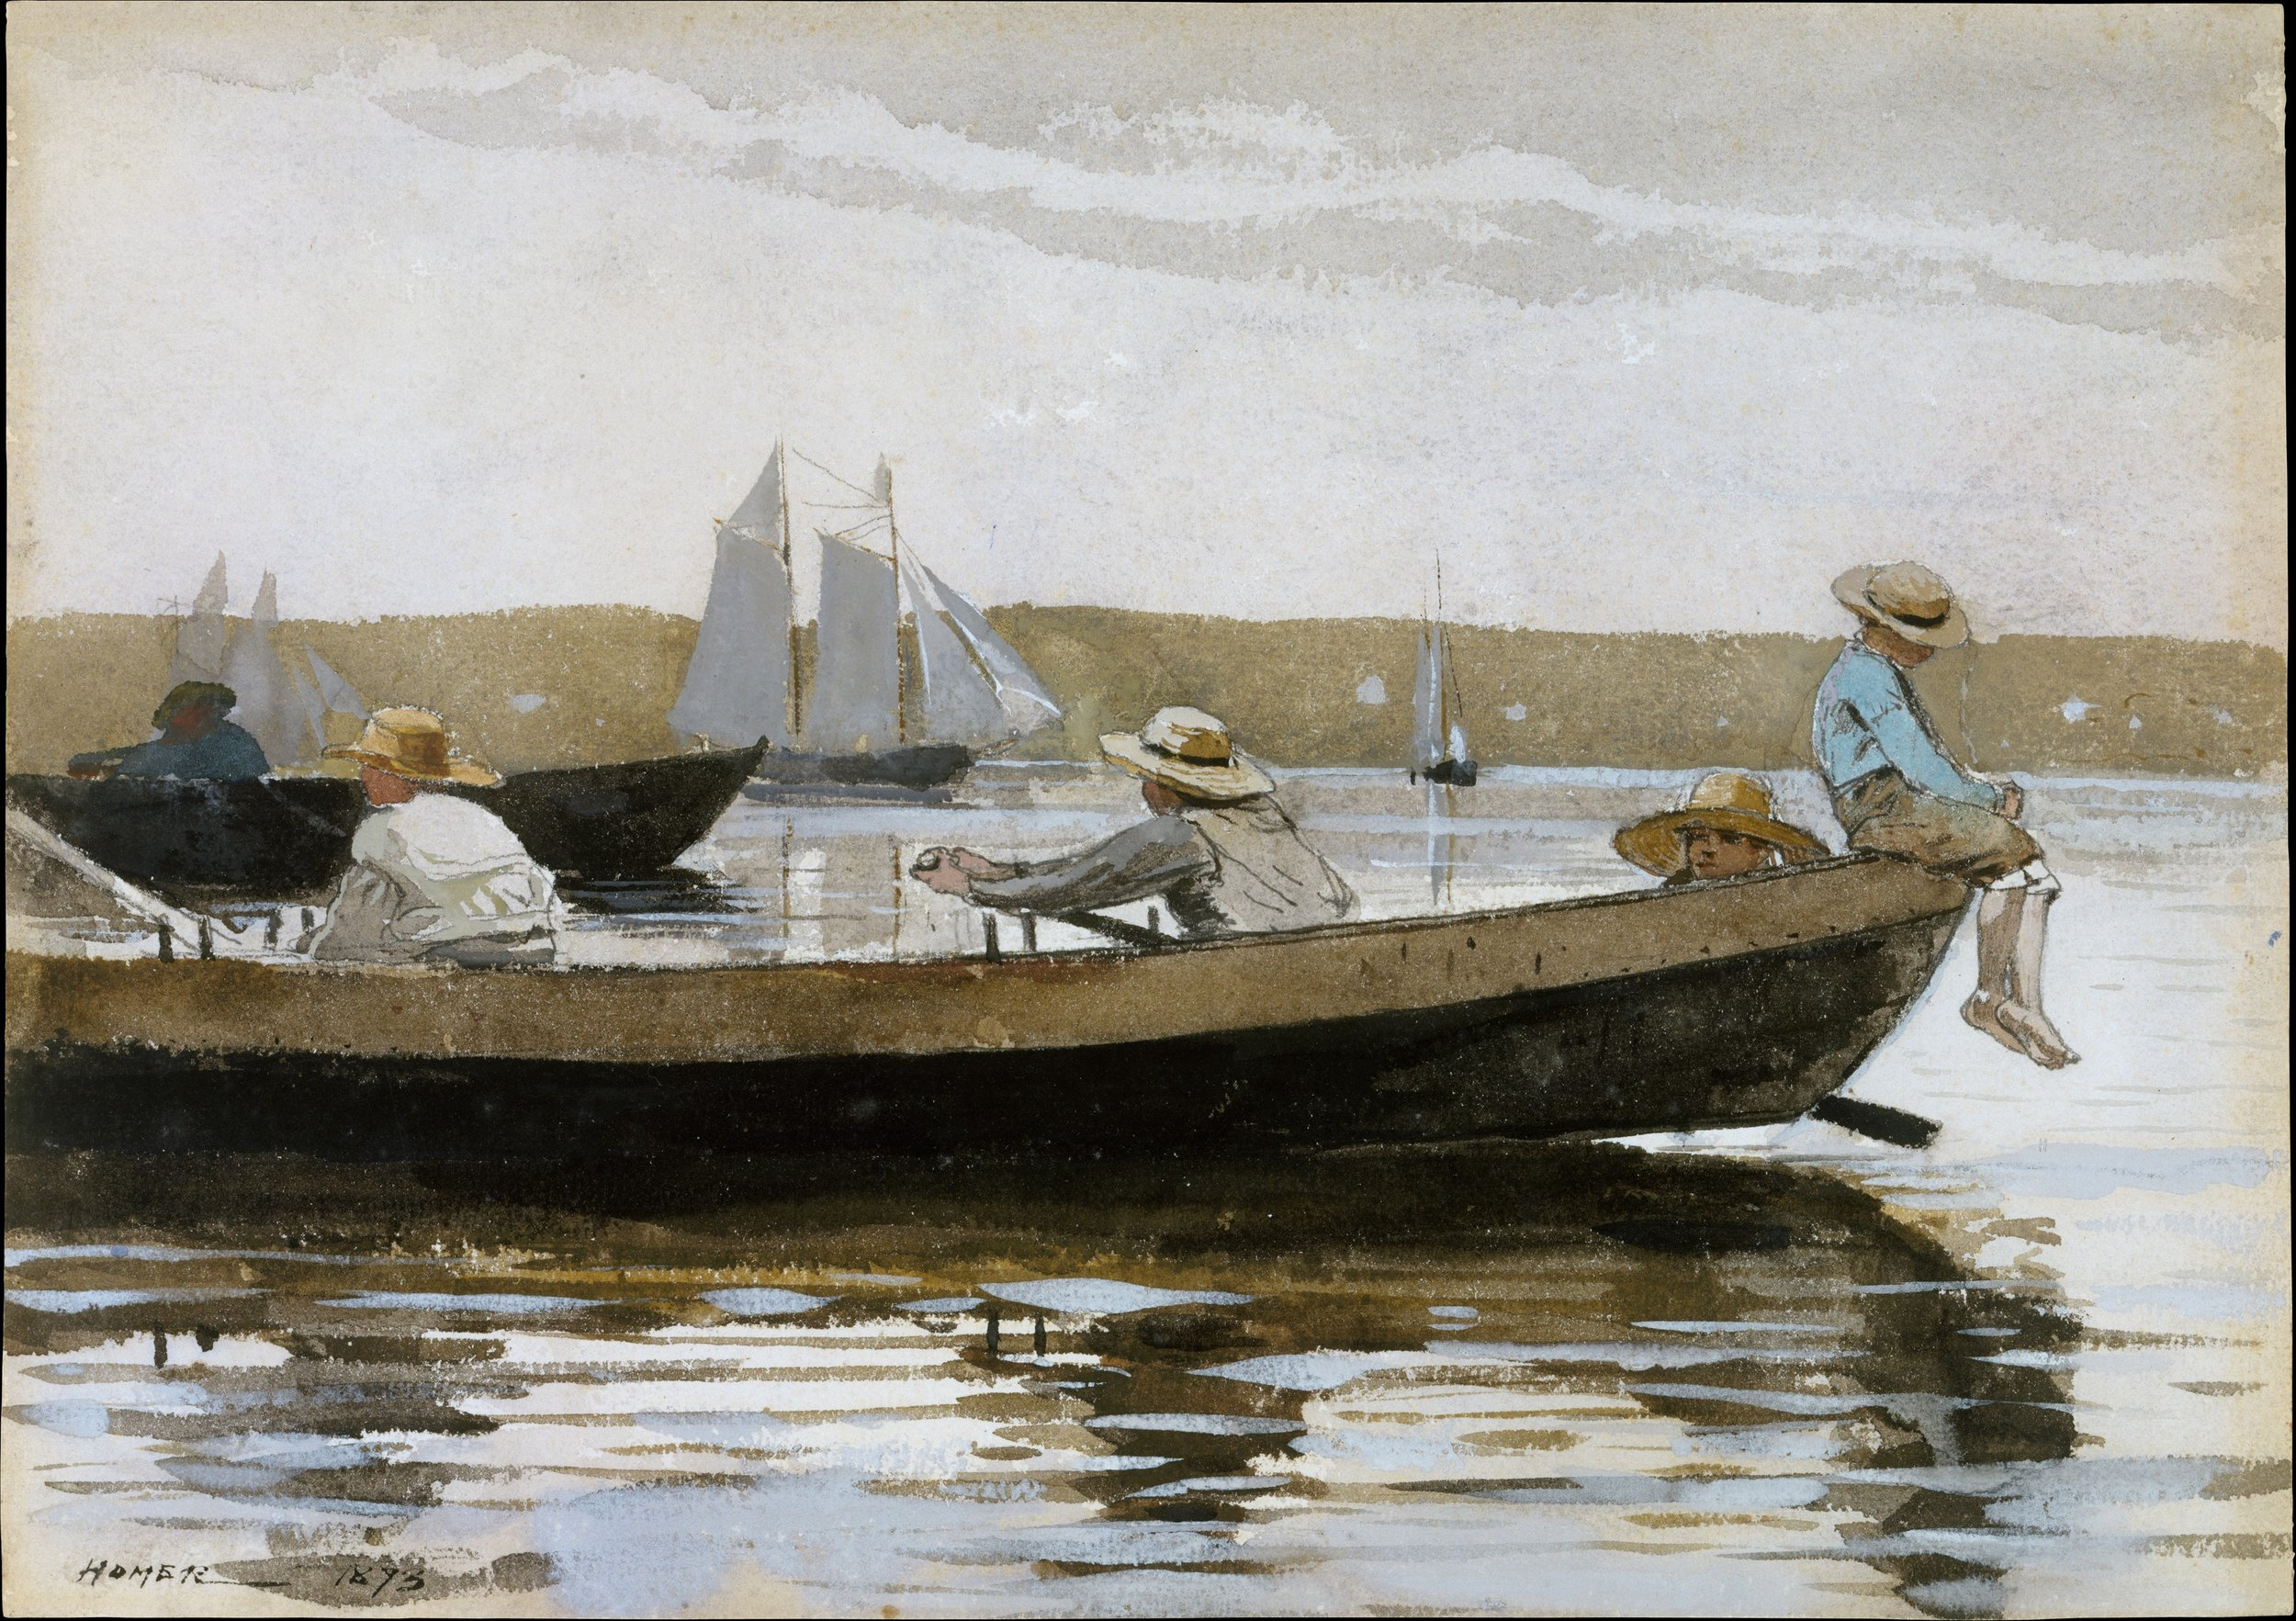 Boys in a Dory, 1873, Winslow Homer (American 1836-1910). Watercolor washes and gouache over graphite underdrawing on medium rough textured white wove paper, drawings. Courtesy of the Metropolitan Museum of Art.